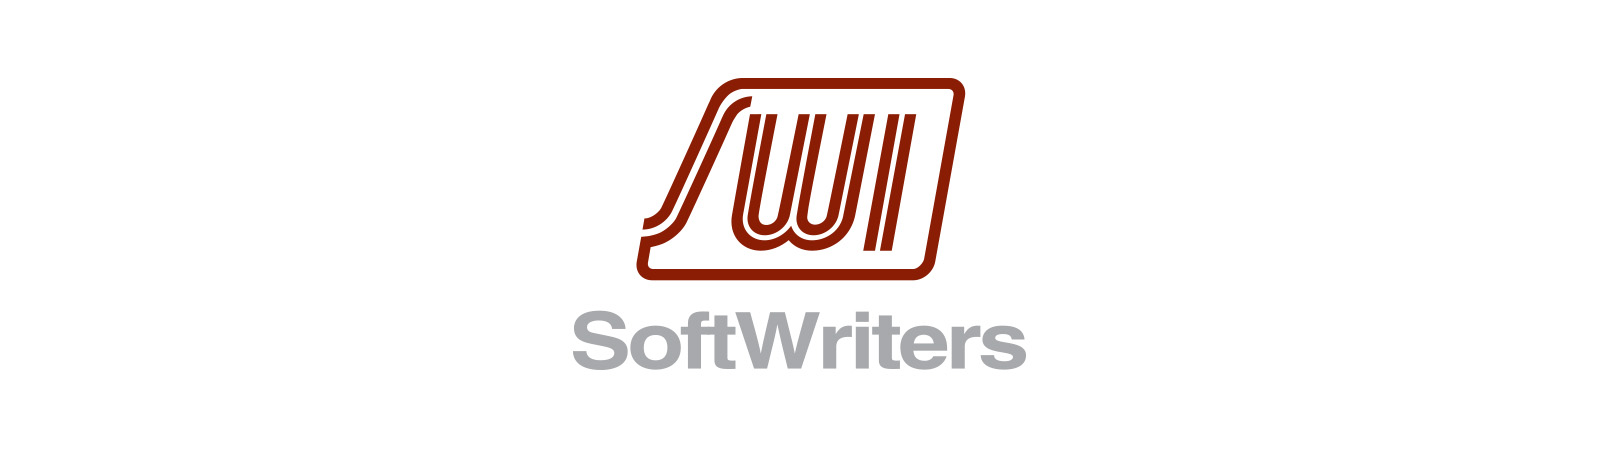 Softwriters logo image